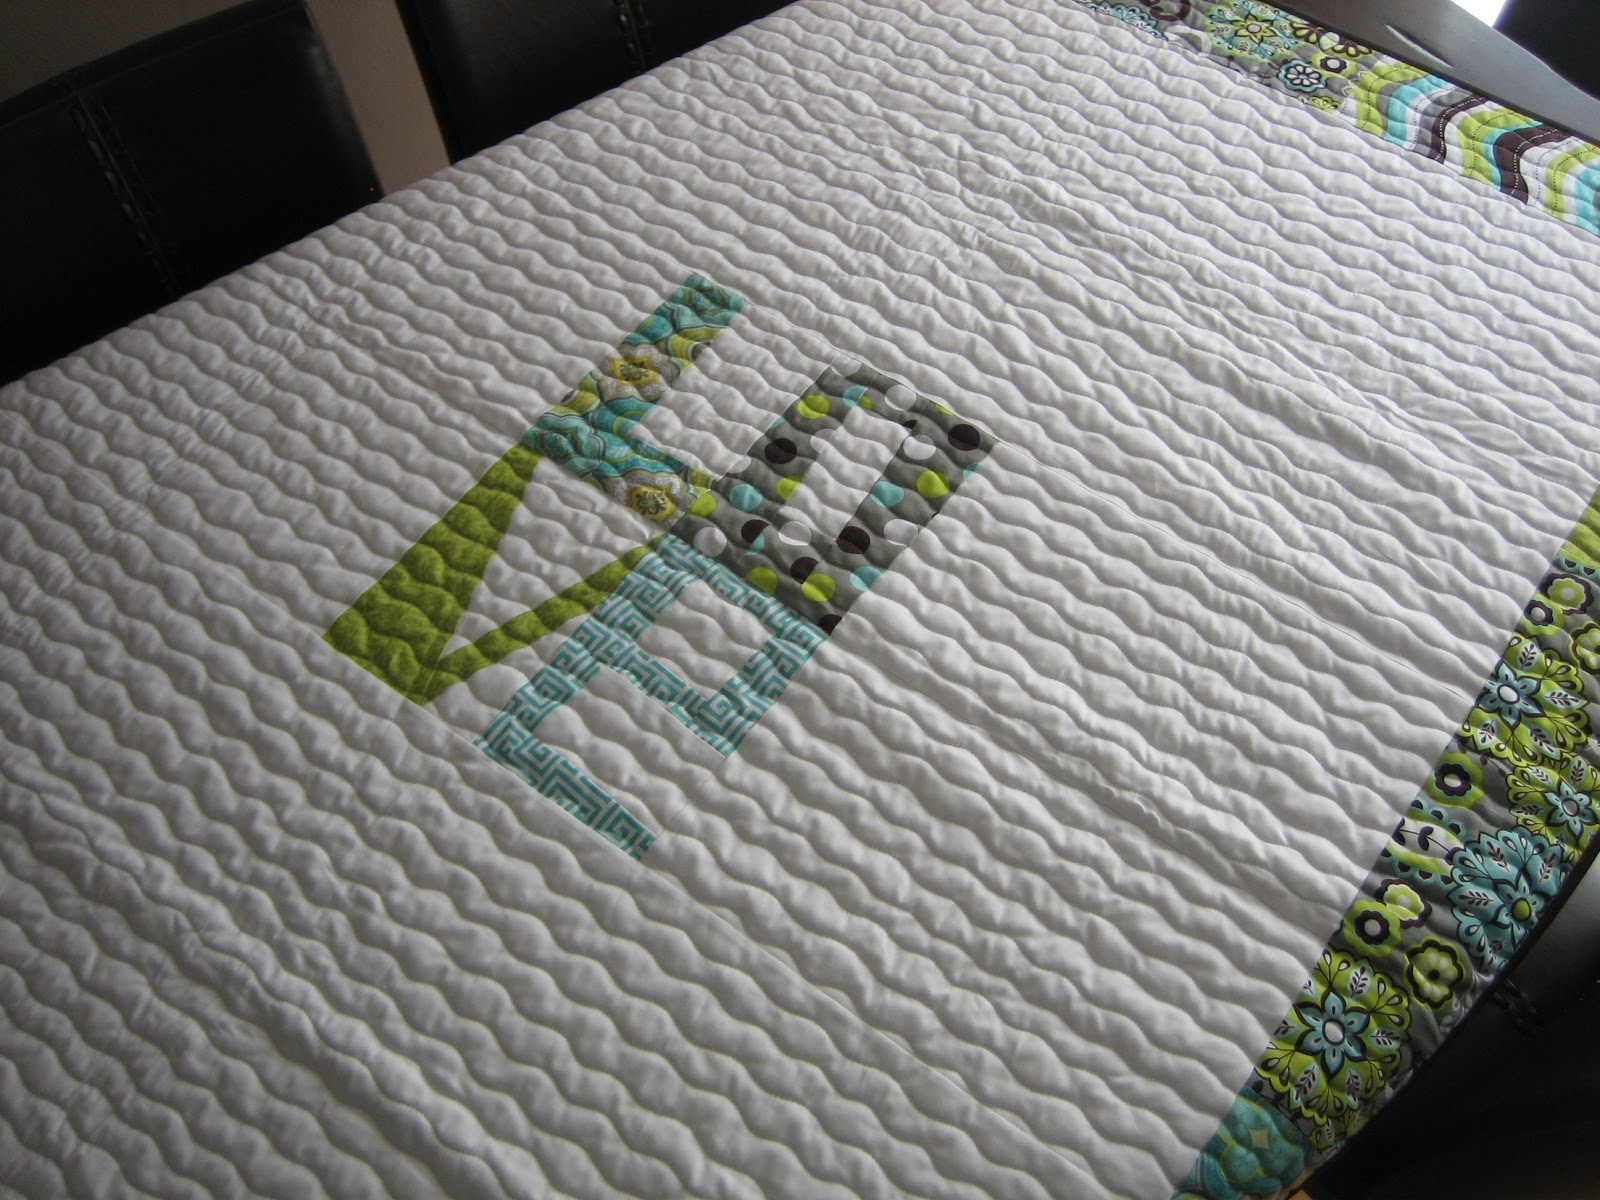 Quilting Patterns Stitching : Sew In Stitches!: